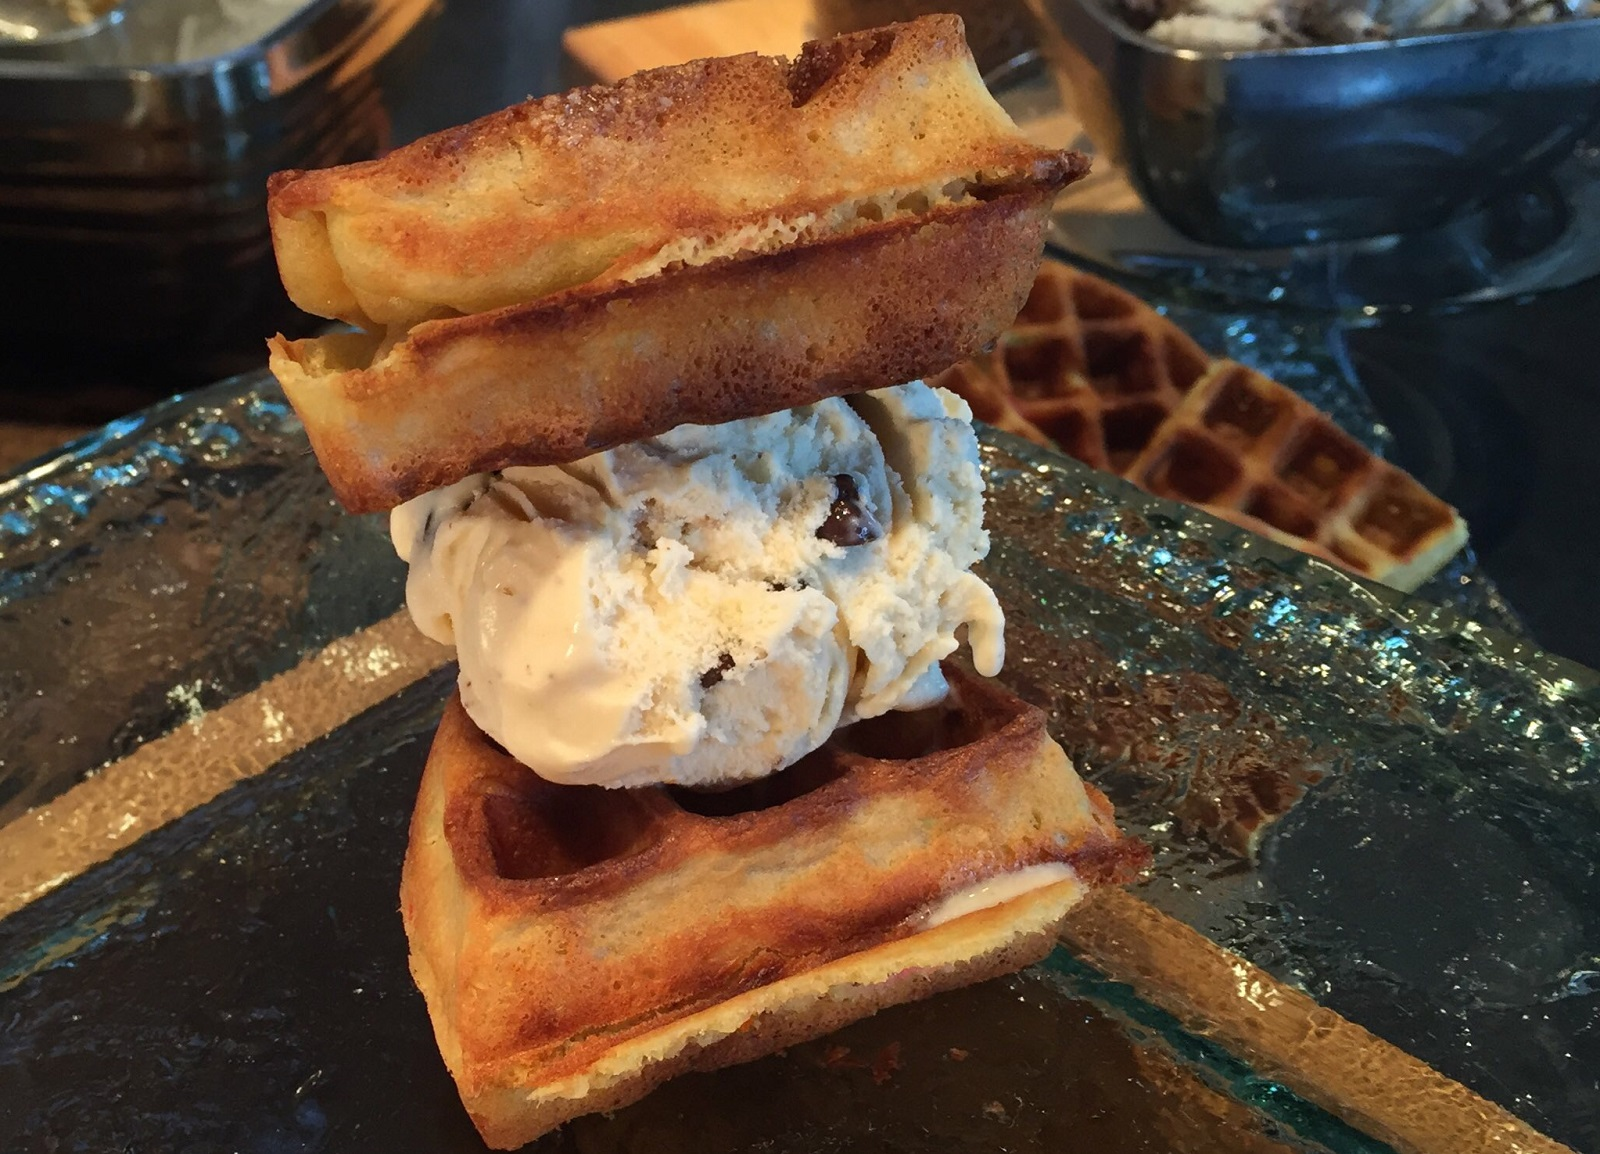 Perry's Ice Cream waffle sandwich is a nice item for general concessions at Sabres games. (Aaron Besecker/Buffalo News)